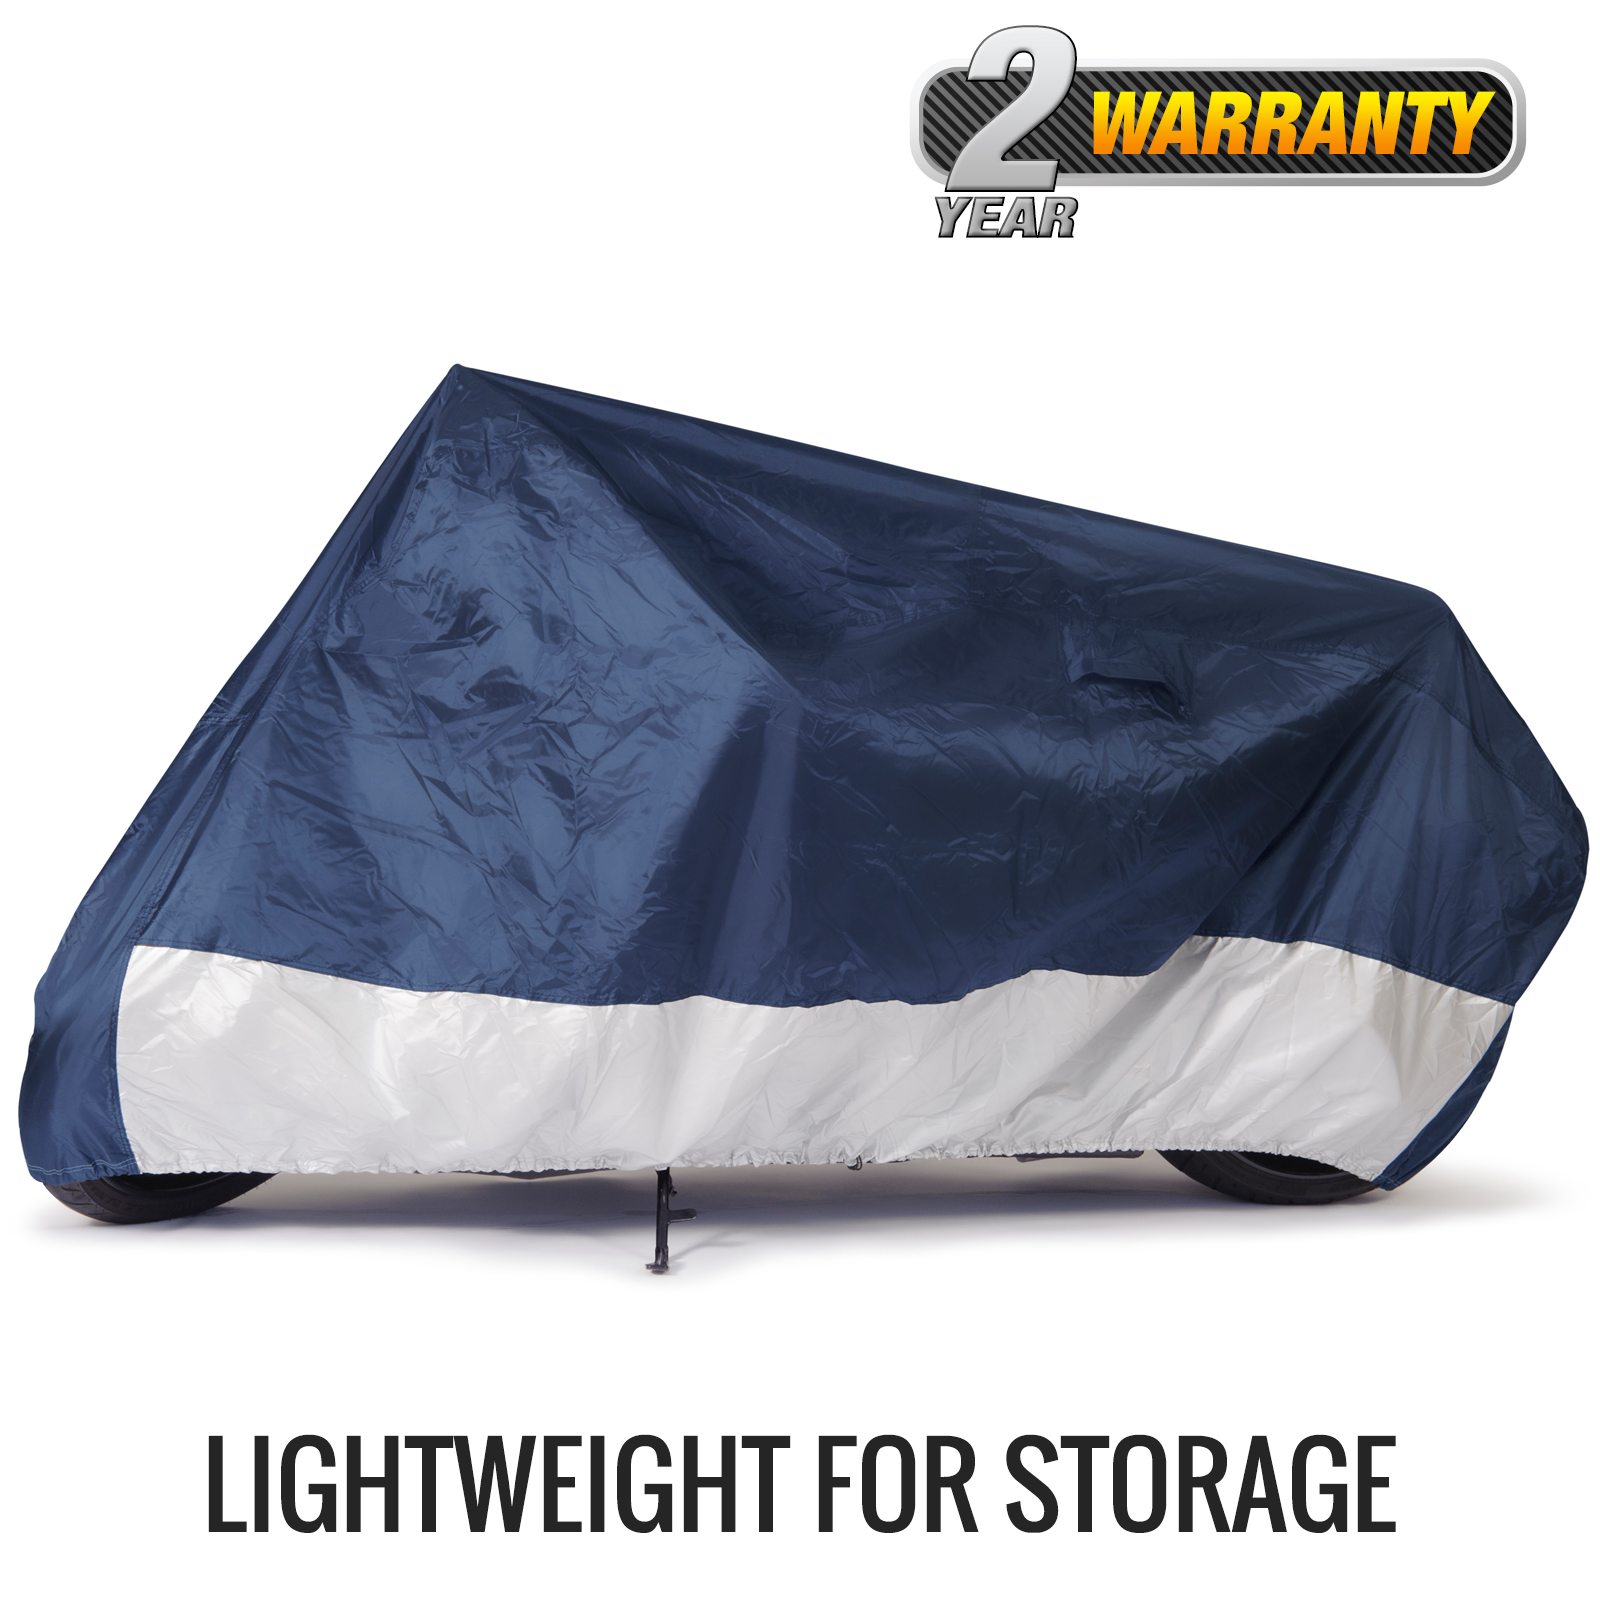 "Budge Standard Motorcycle Cover, Water-Resistant, Size MC-0: 86"" L x 44"" W x 44"" H"